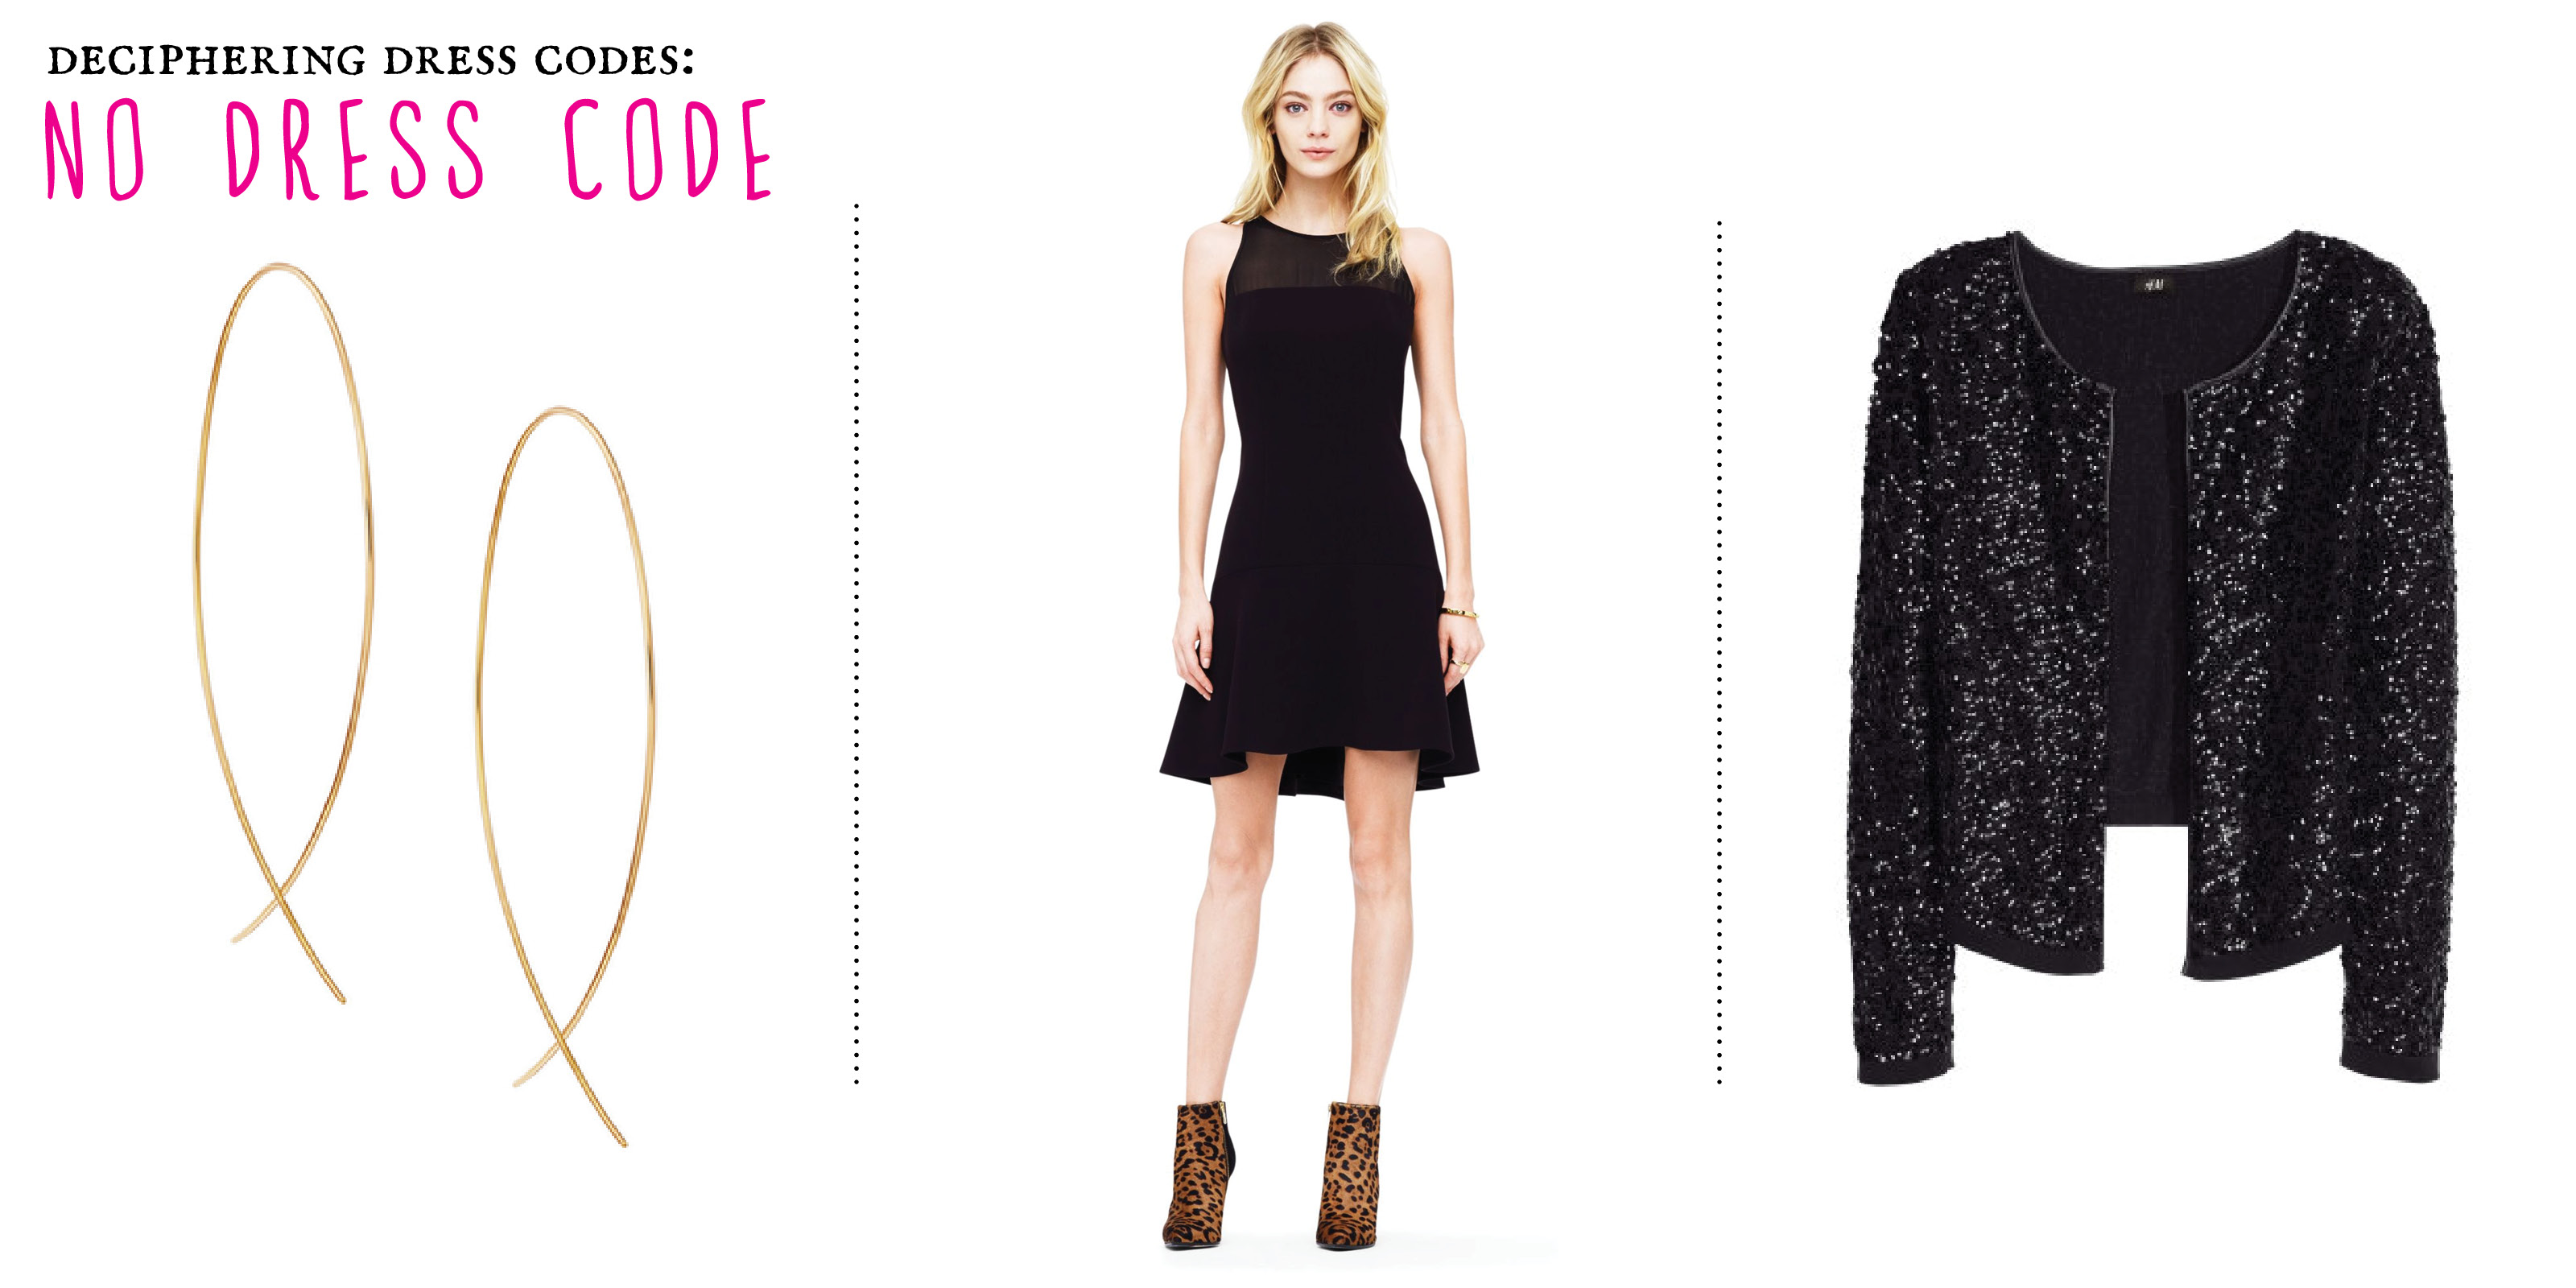 Party Chic Deciphering Cryptic Holiday Dress Codes Huffpost Life